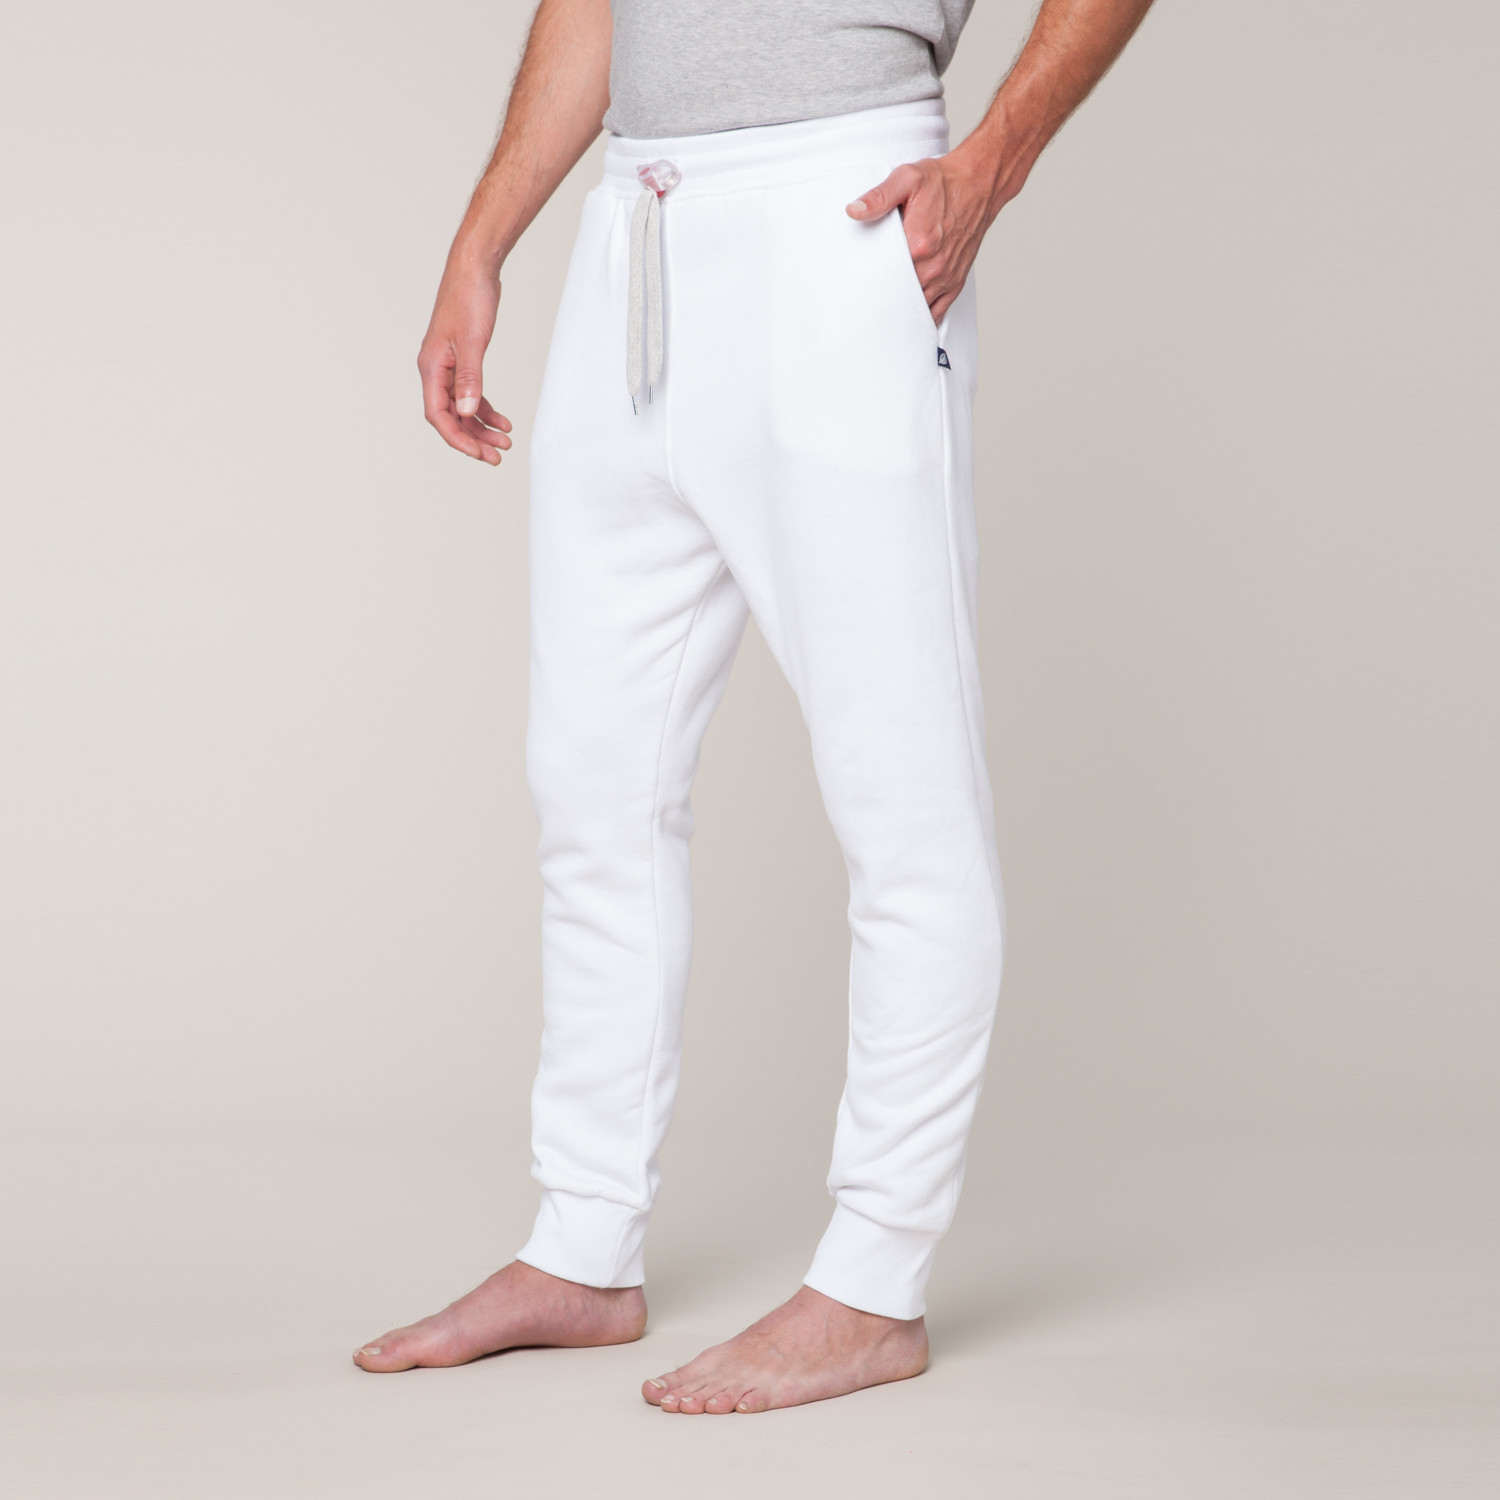 Sweatpants are a casual variety of soft trousers intended for comfort or athletic purposes, although they are now worn in many different situations. In the United Kingdom, Australia, New Zealand, and South Africa they are known as tracksuit bottoms or jogging distrib-u5b2od.ga Australia, they are also commonly known as trackpants, trackies or tracky daks.